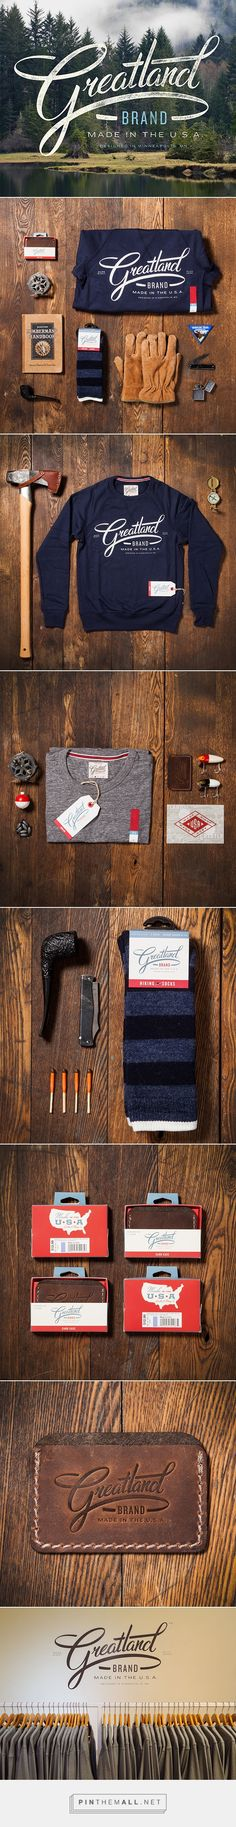 Greatland Branding on Behance